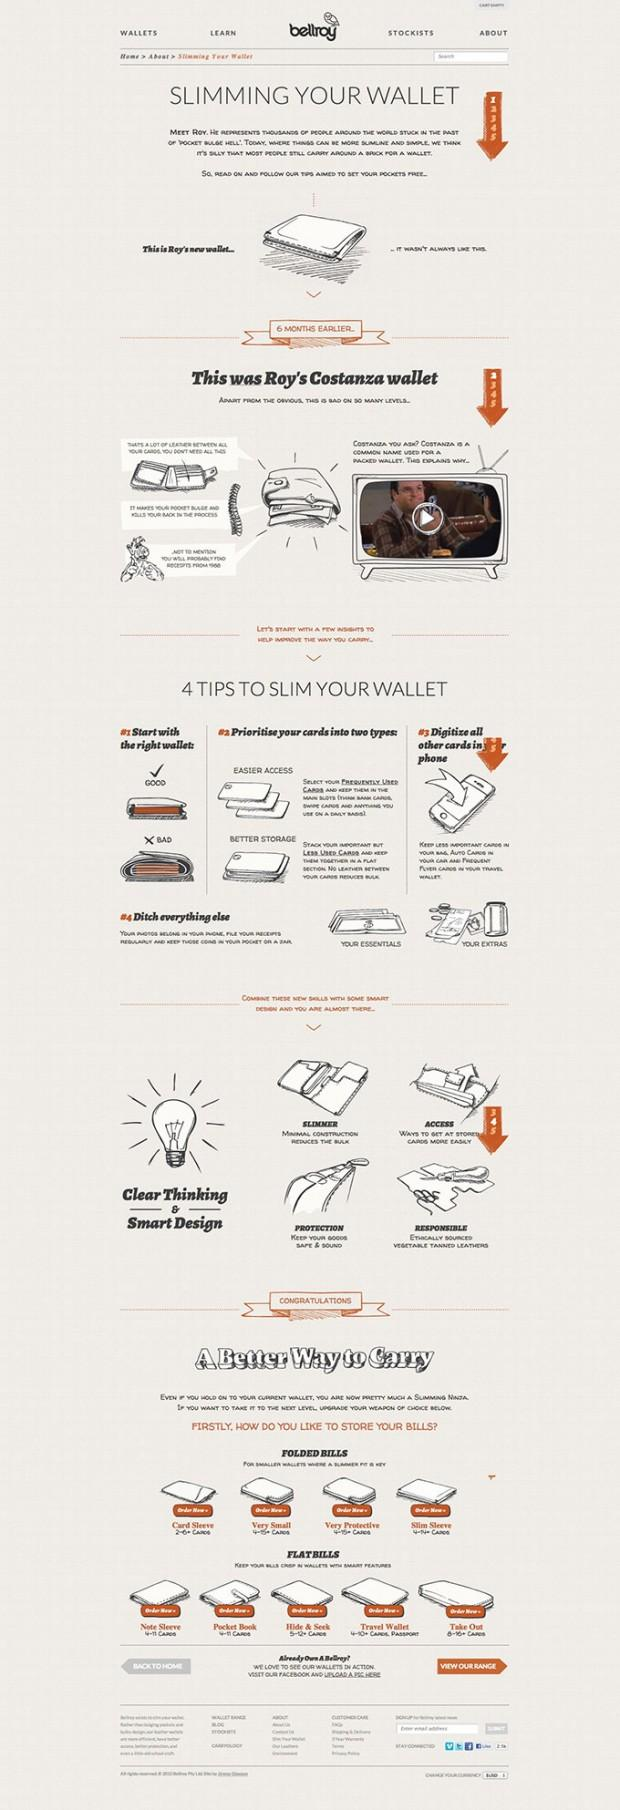 Best About Pages – Showcasing the best of the best about pages on the web » Bellroy